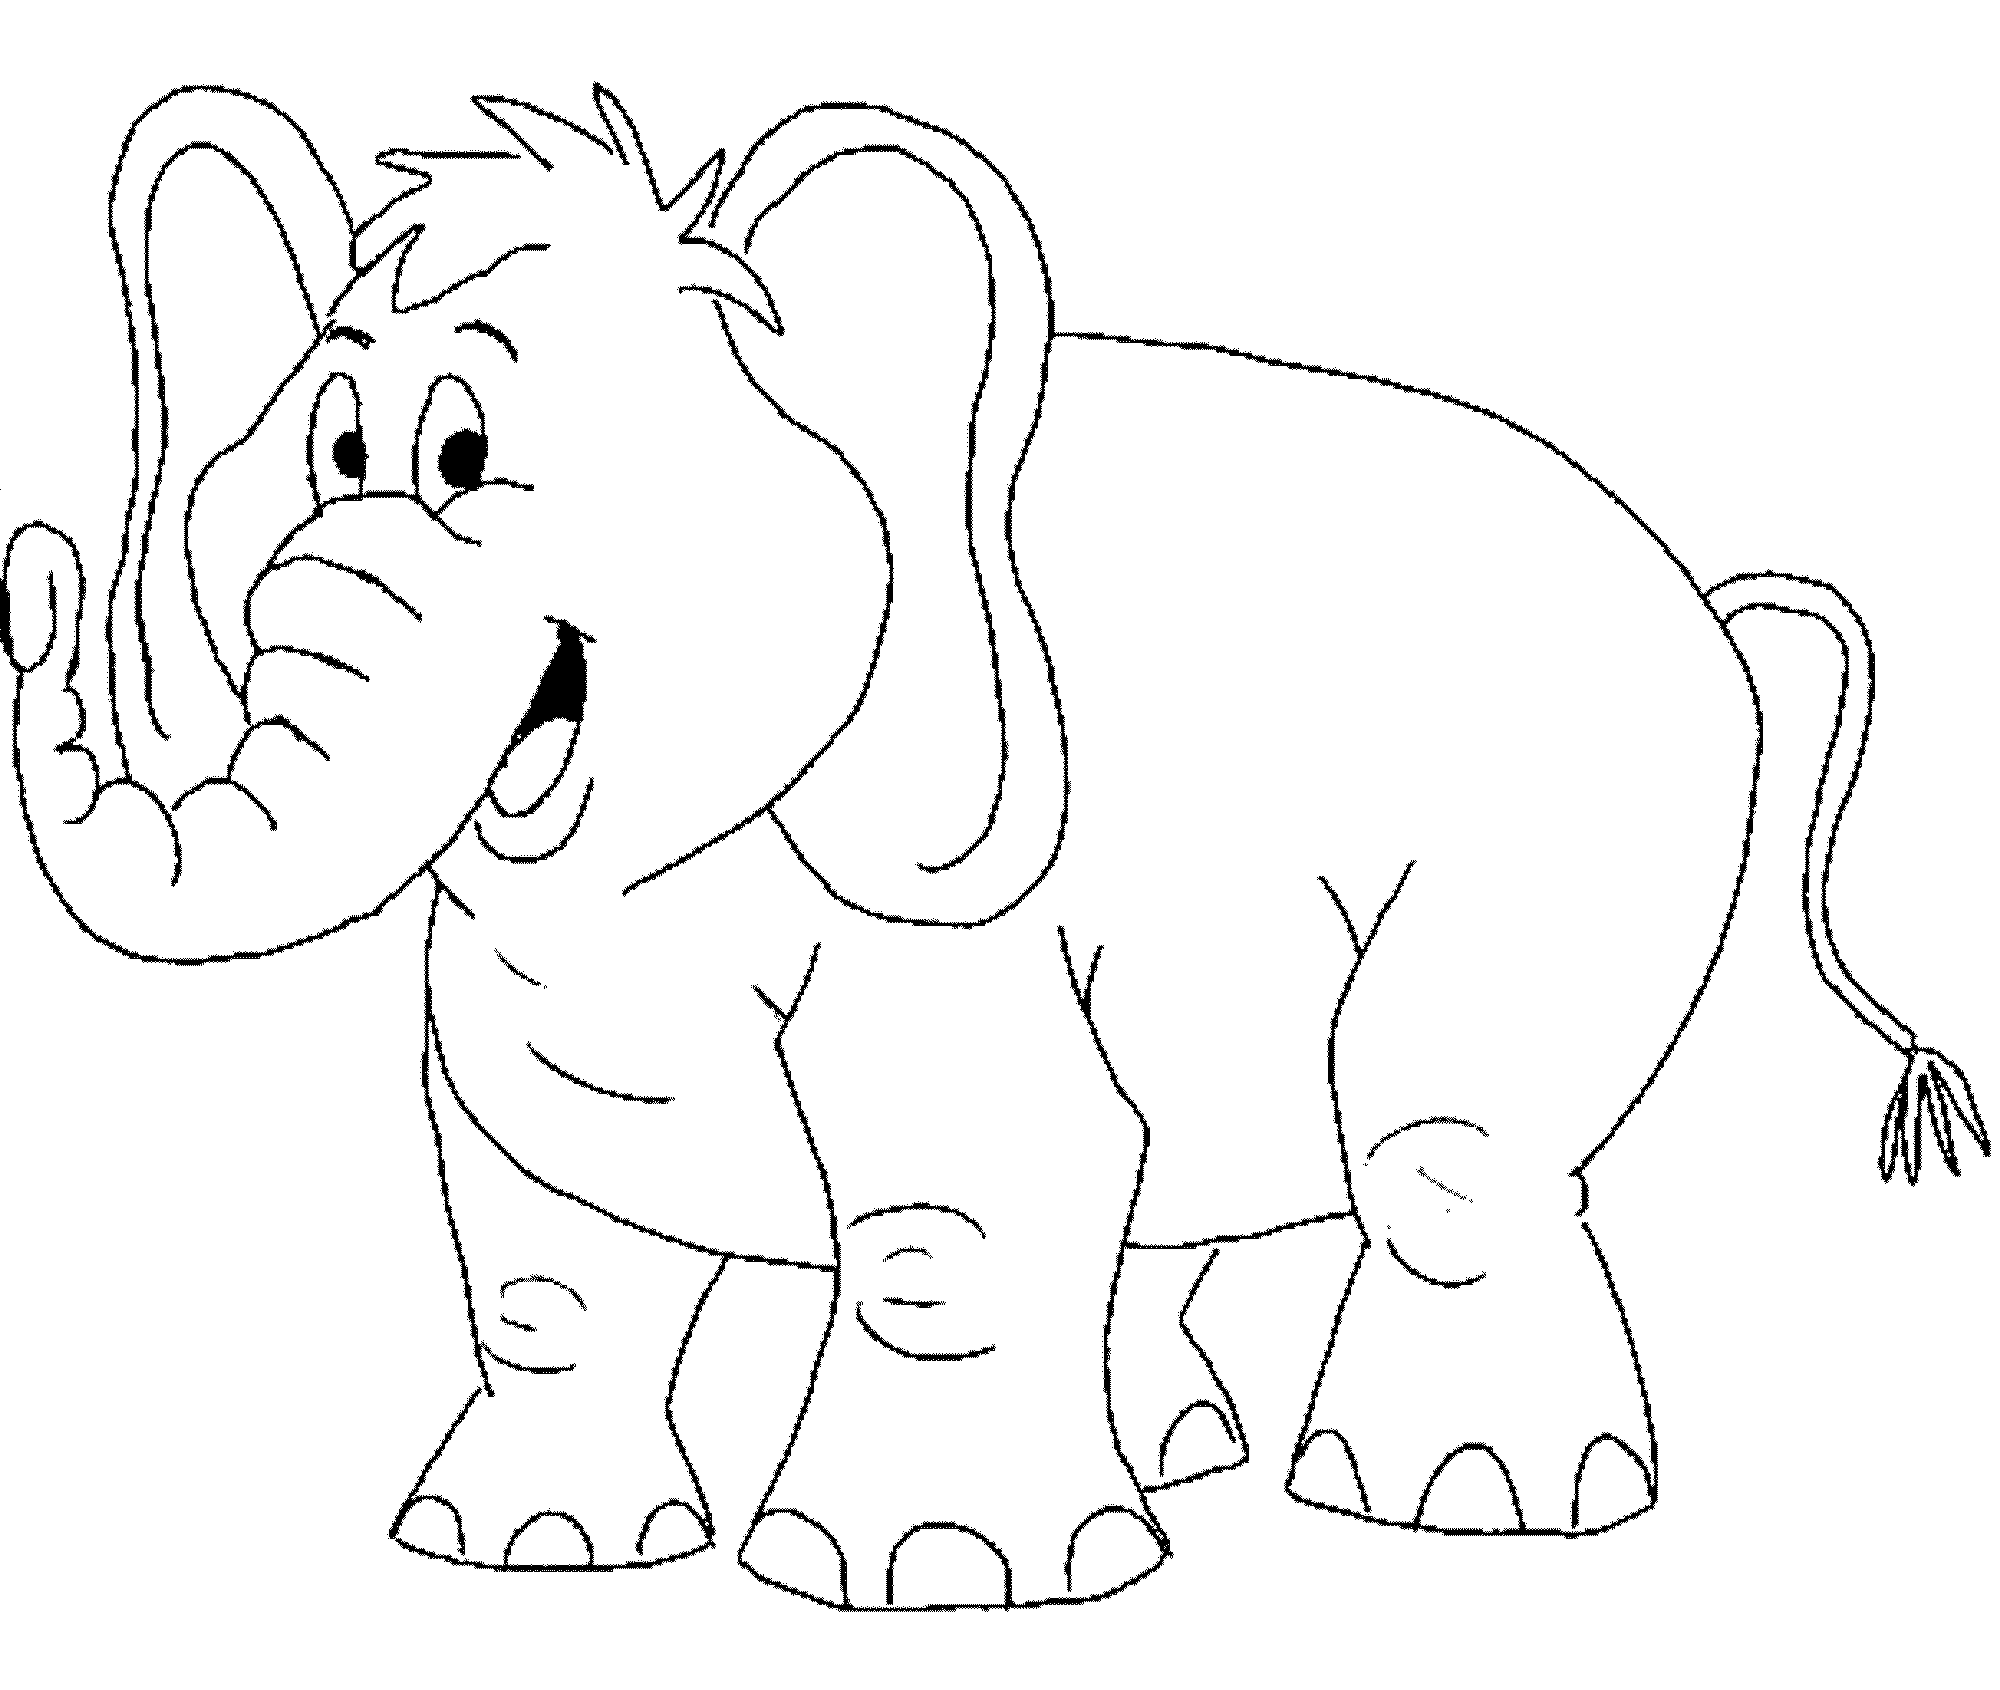 elephant colouring games elephants dot to dot game printable connect the dots game games colouring elephant